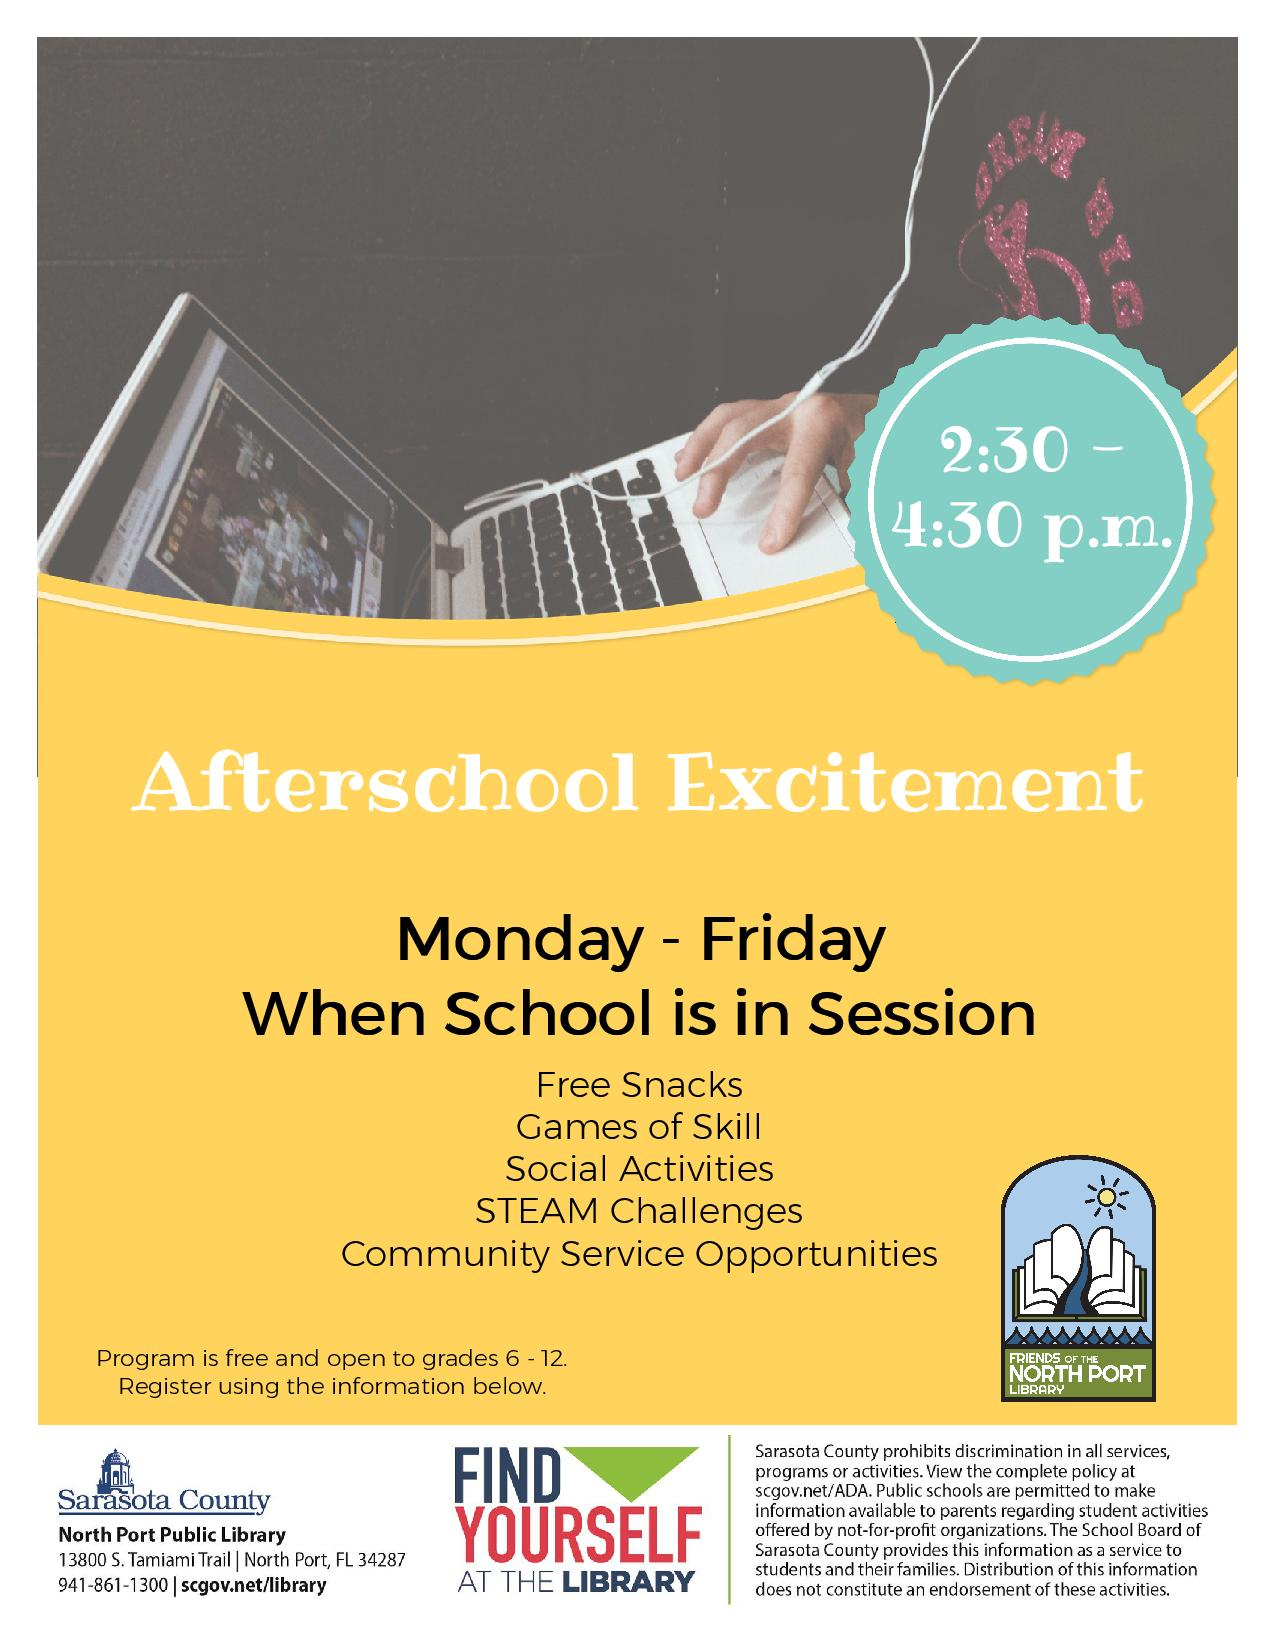 After School Excitement.  Open to grades 6 - 12 with parental permission.  Games, community service, creation station, and more.  Monday through Friday, 2:30 to 4:30 p.m. when school is in session.